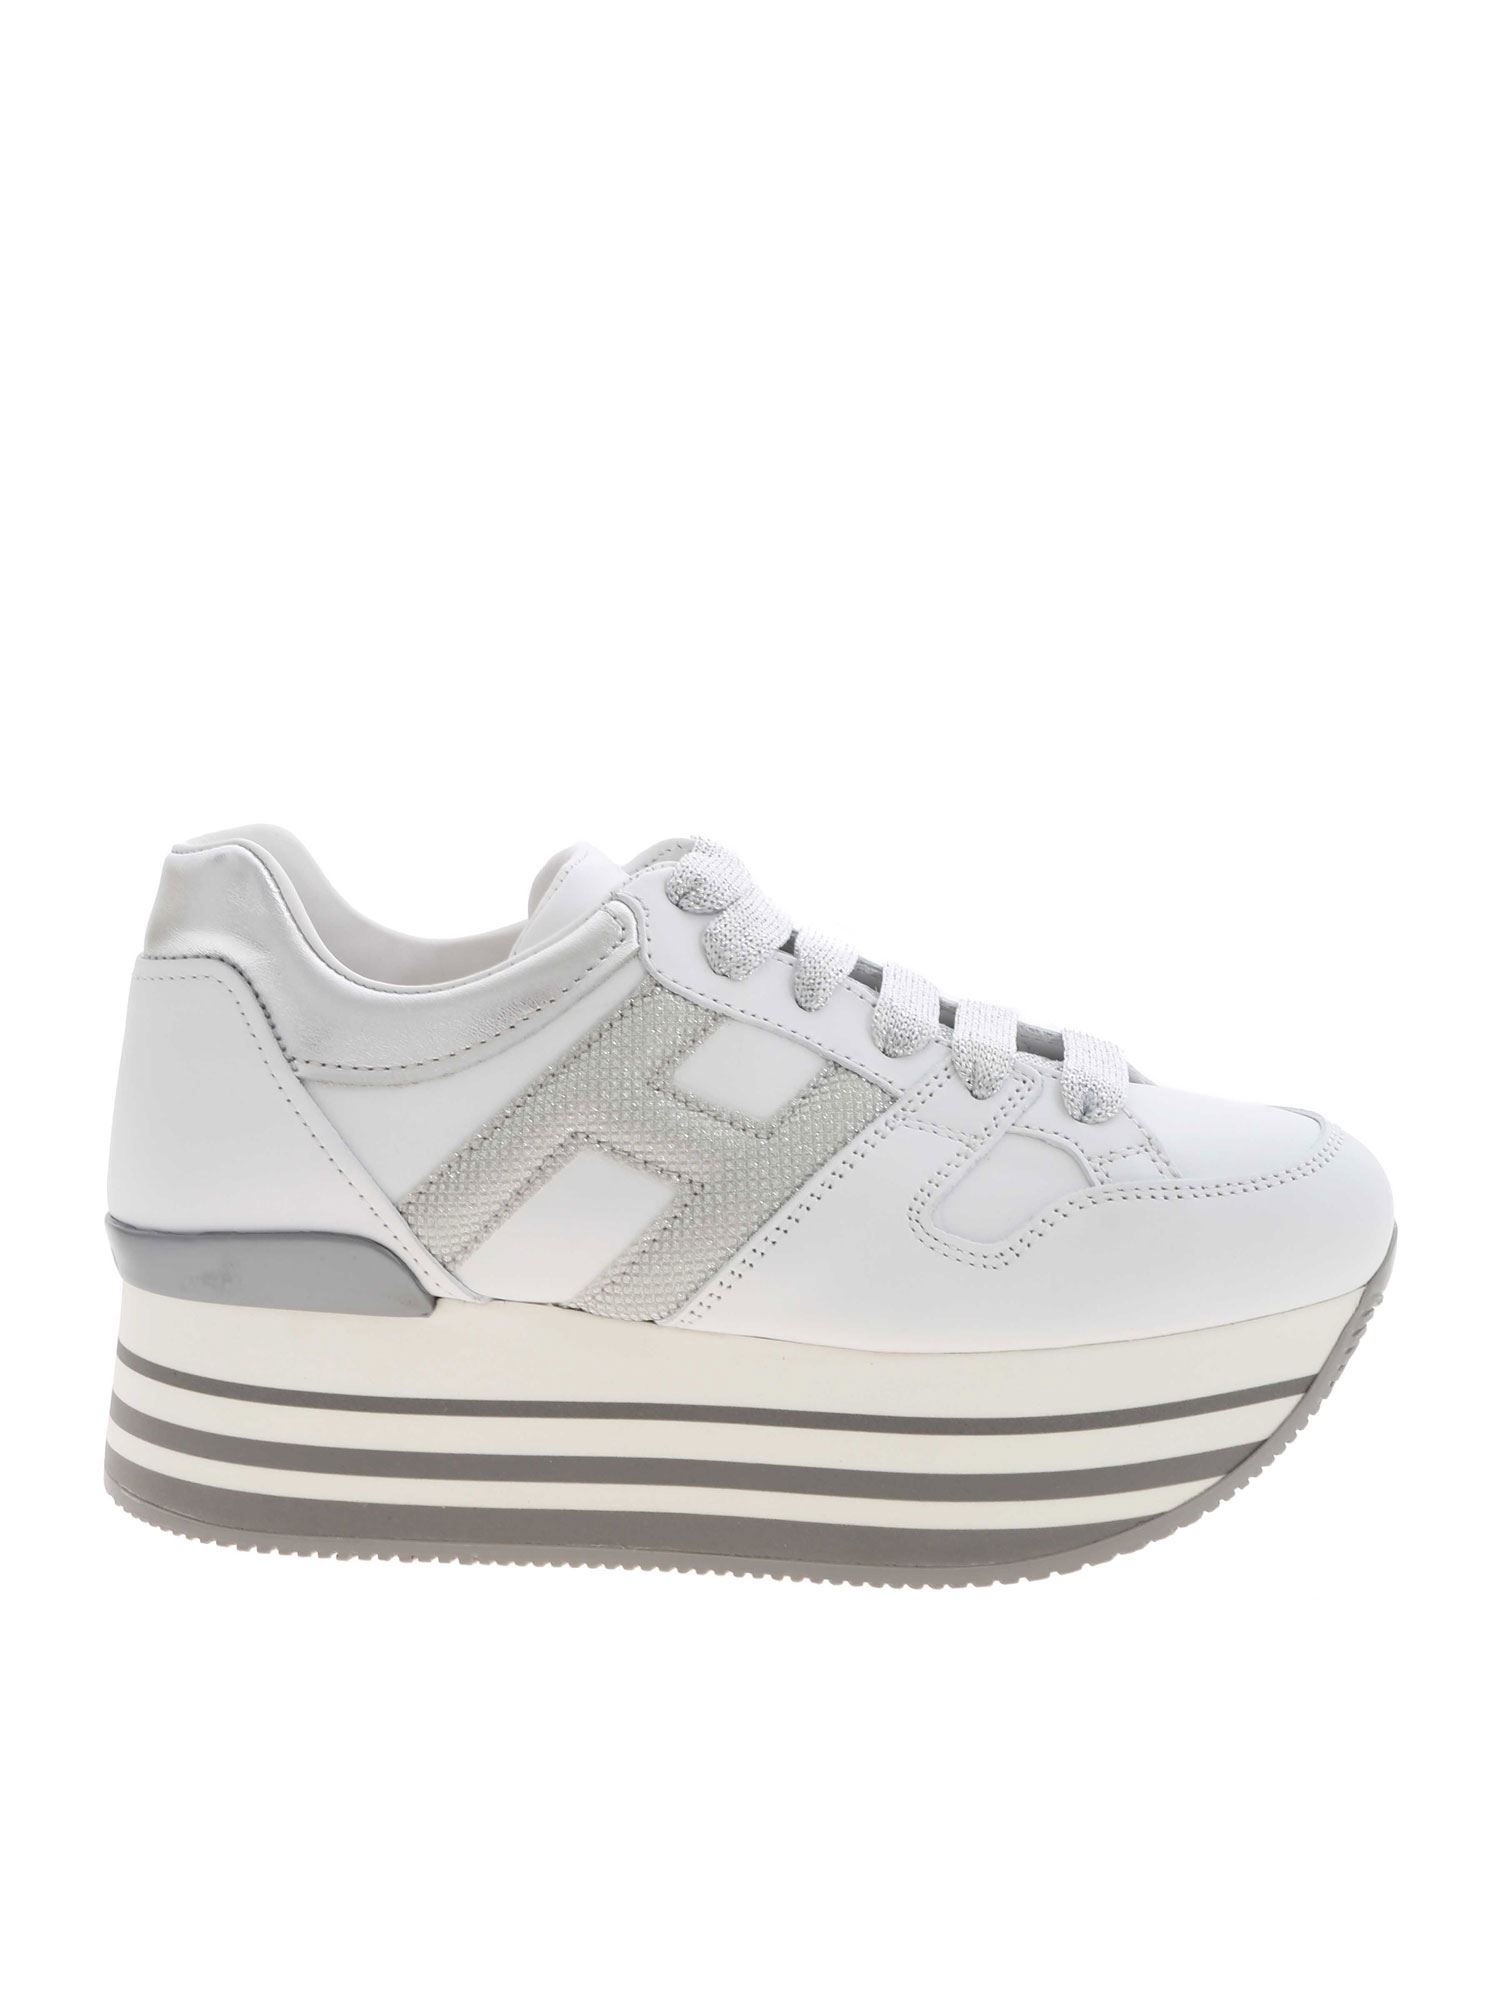 H283 SNEAKERS IN WHITE AND SILVER